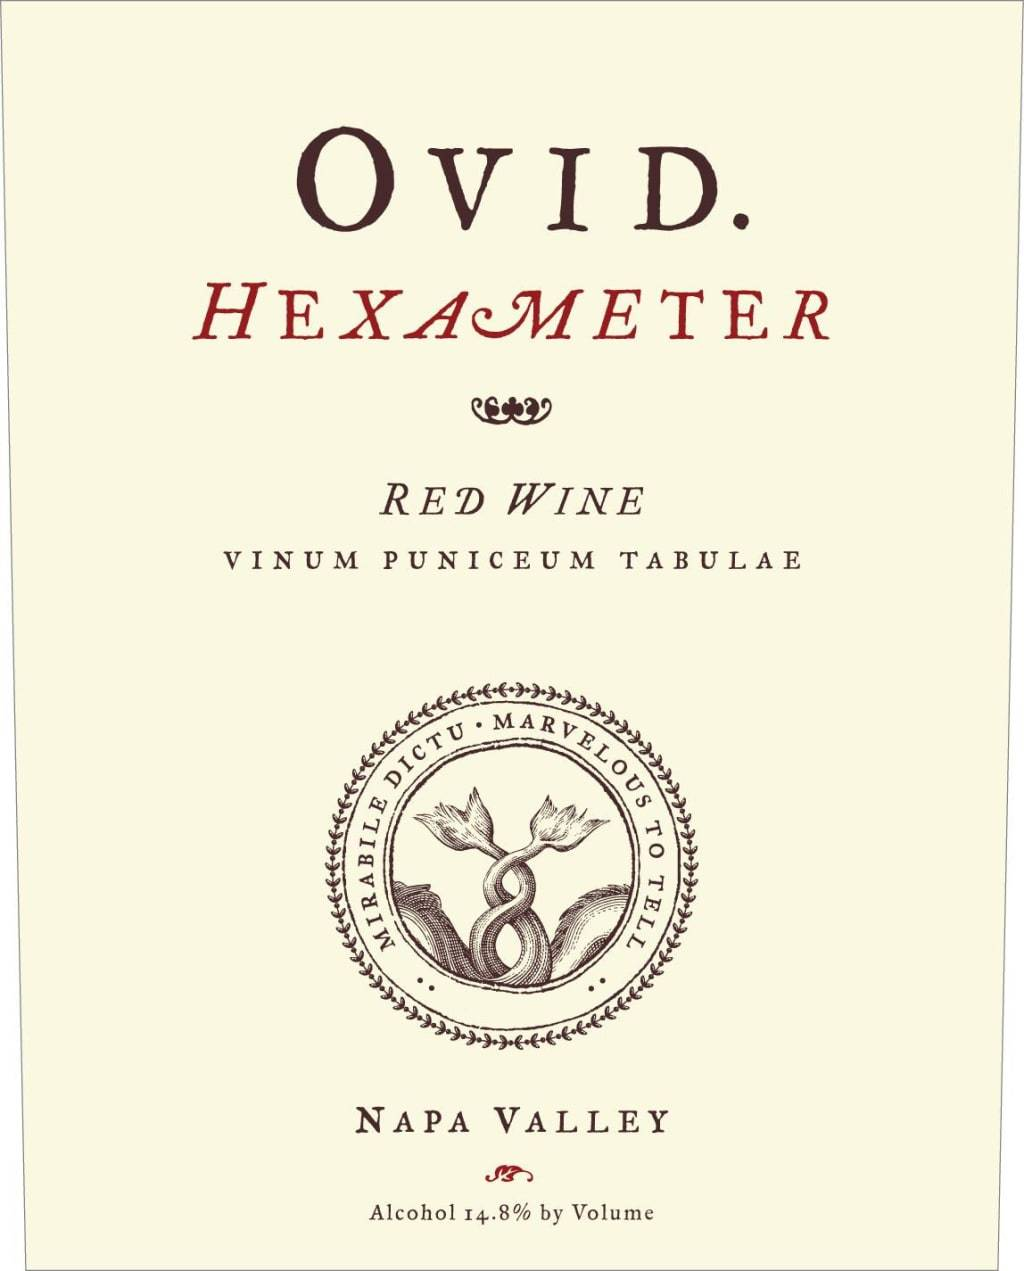 Ovid Hexameter Red